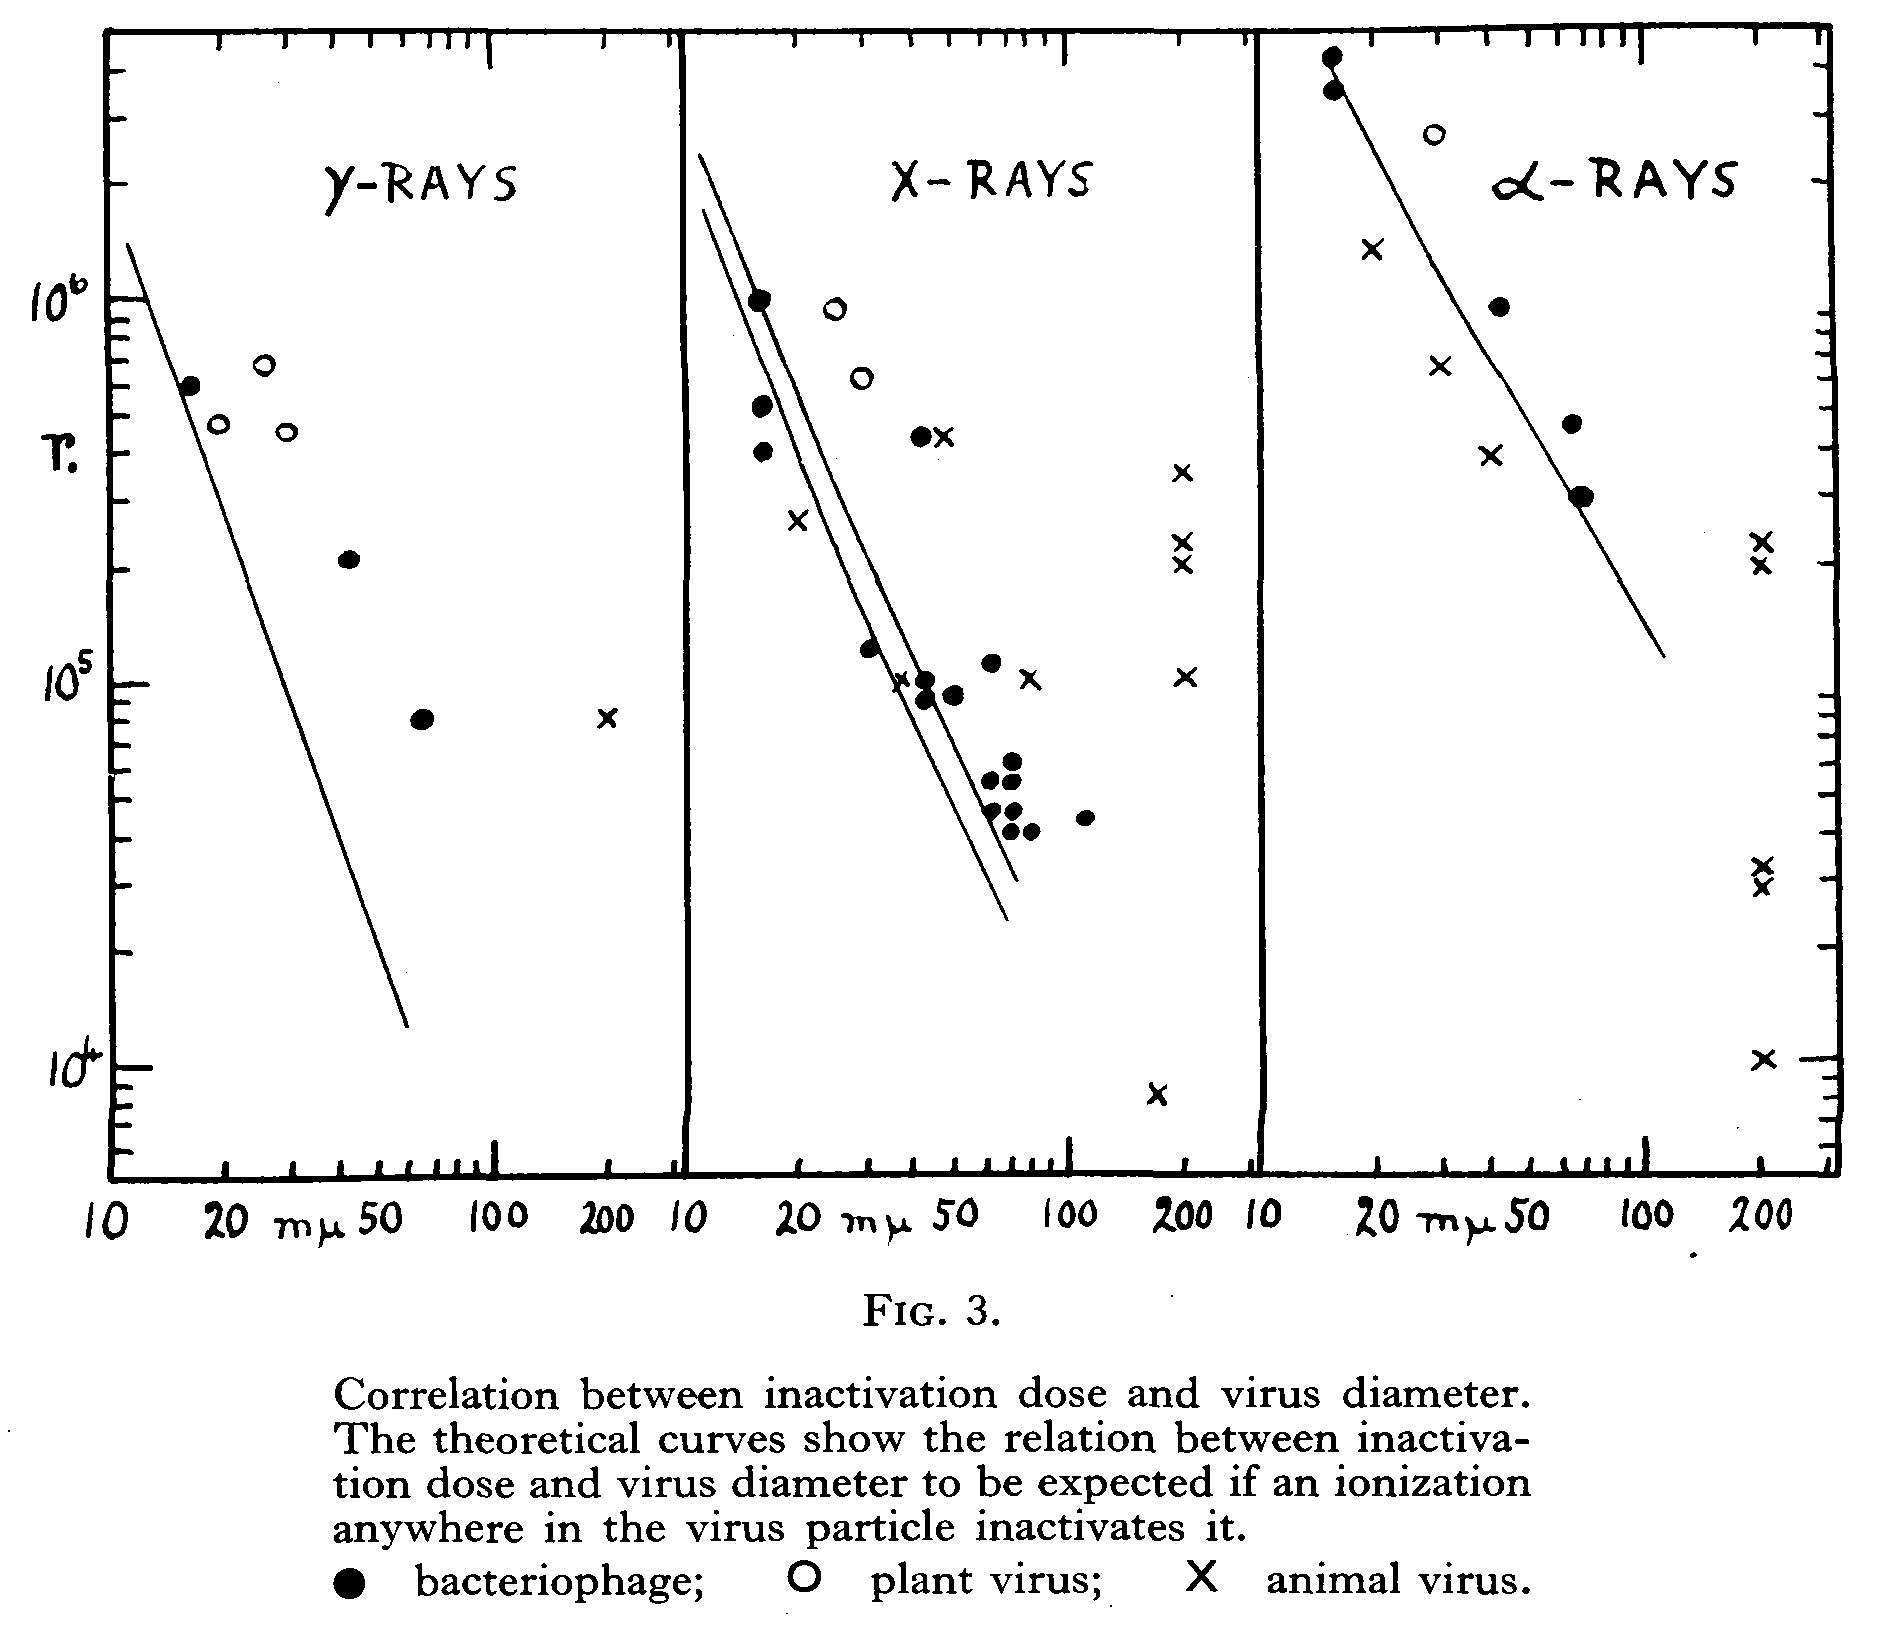 Chart showing correlation between active dose and virus diameter